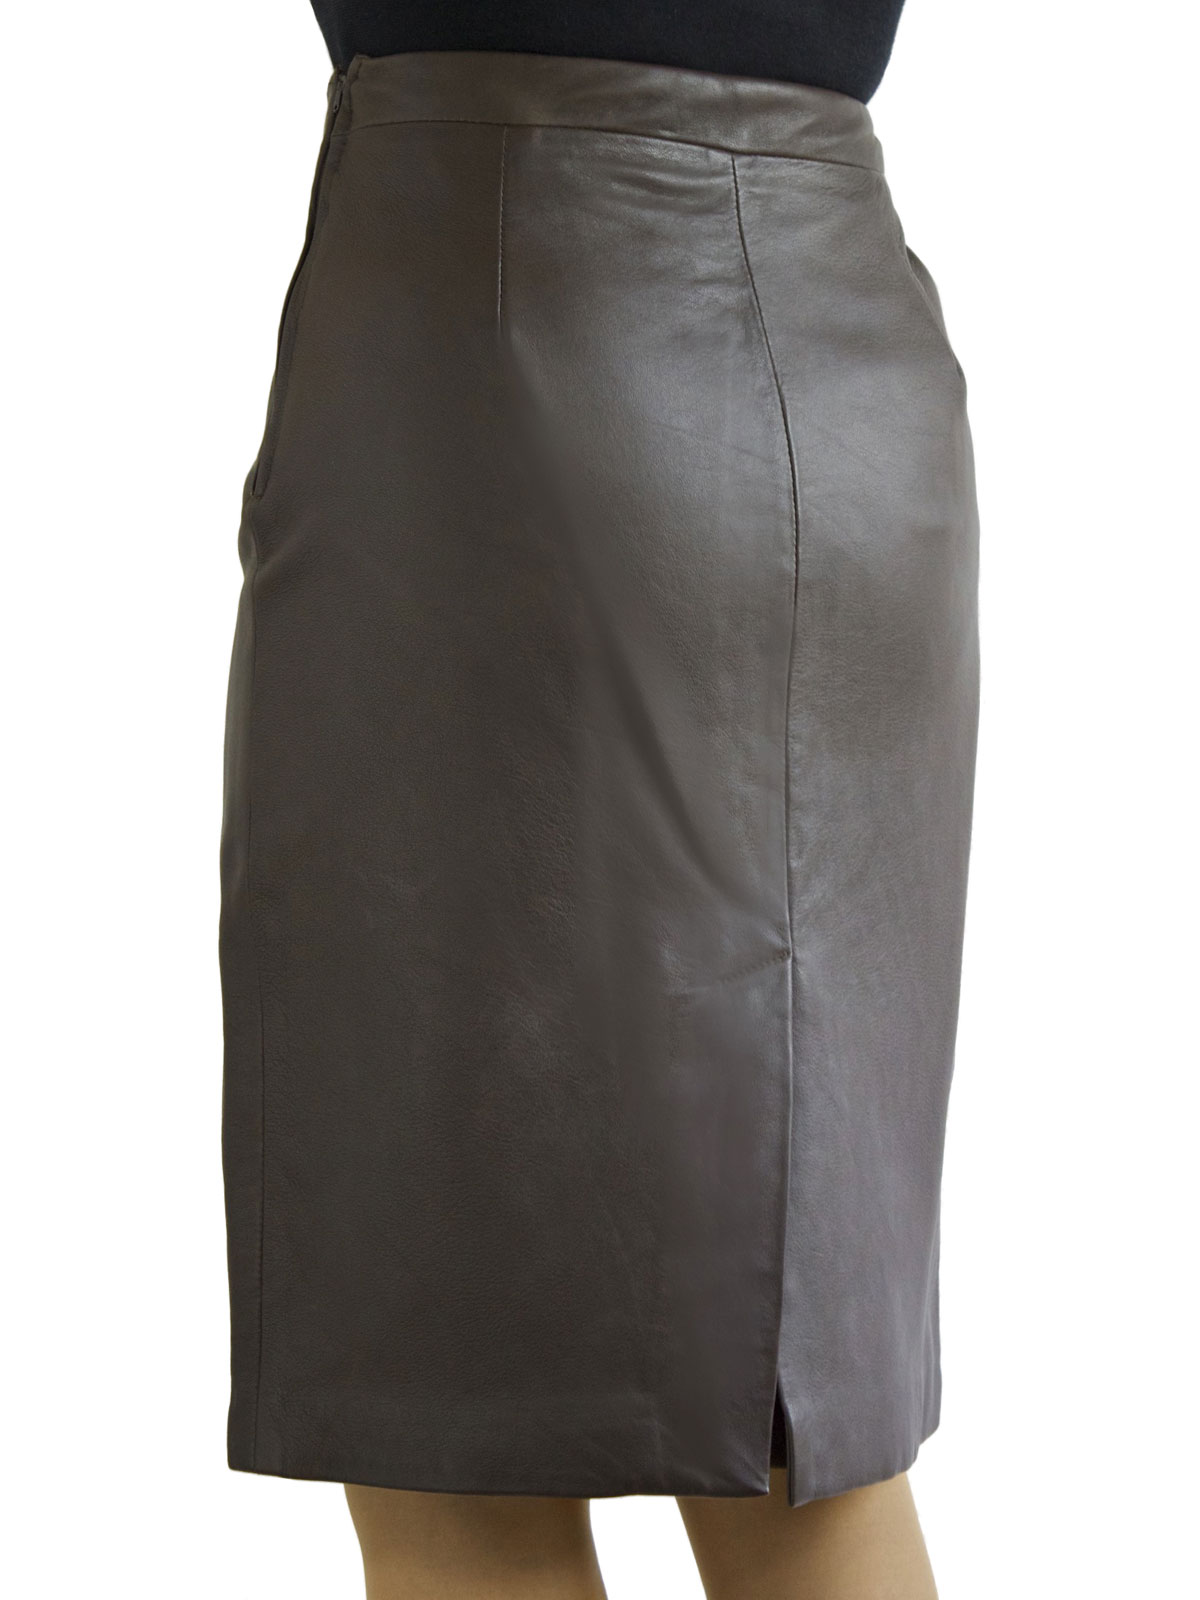 Pencil skirt with tan stockings 3